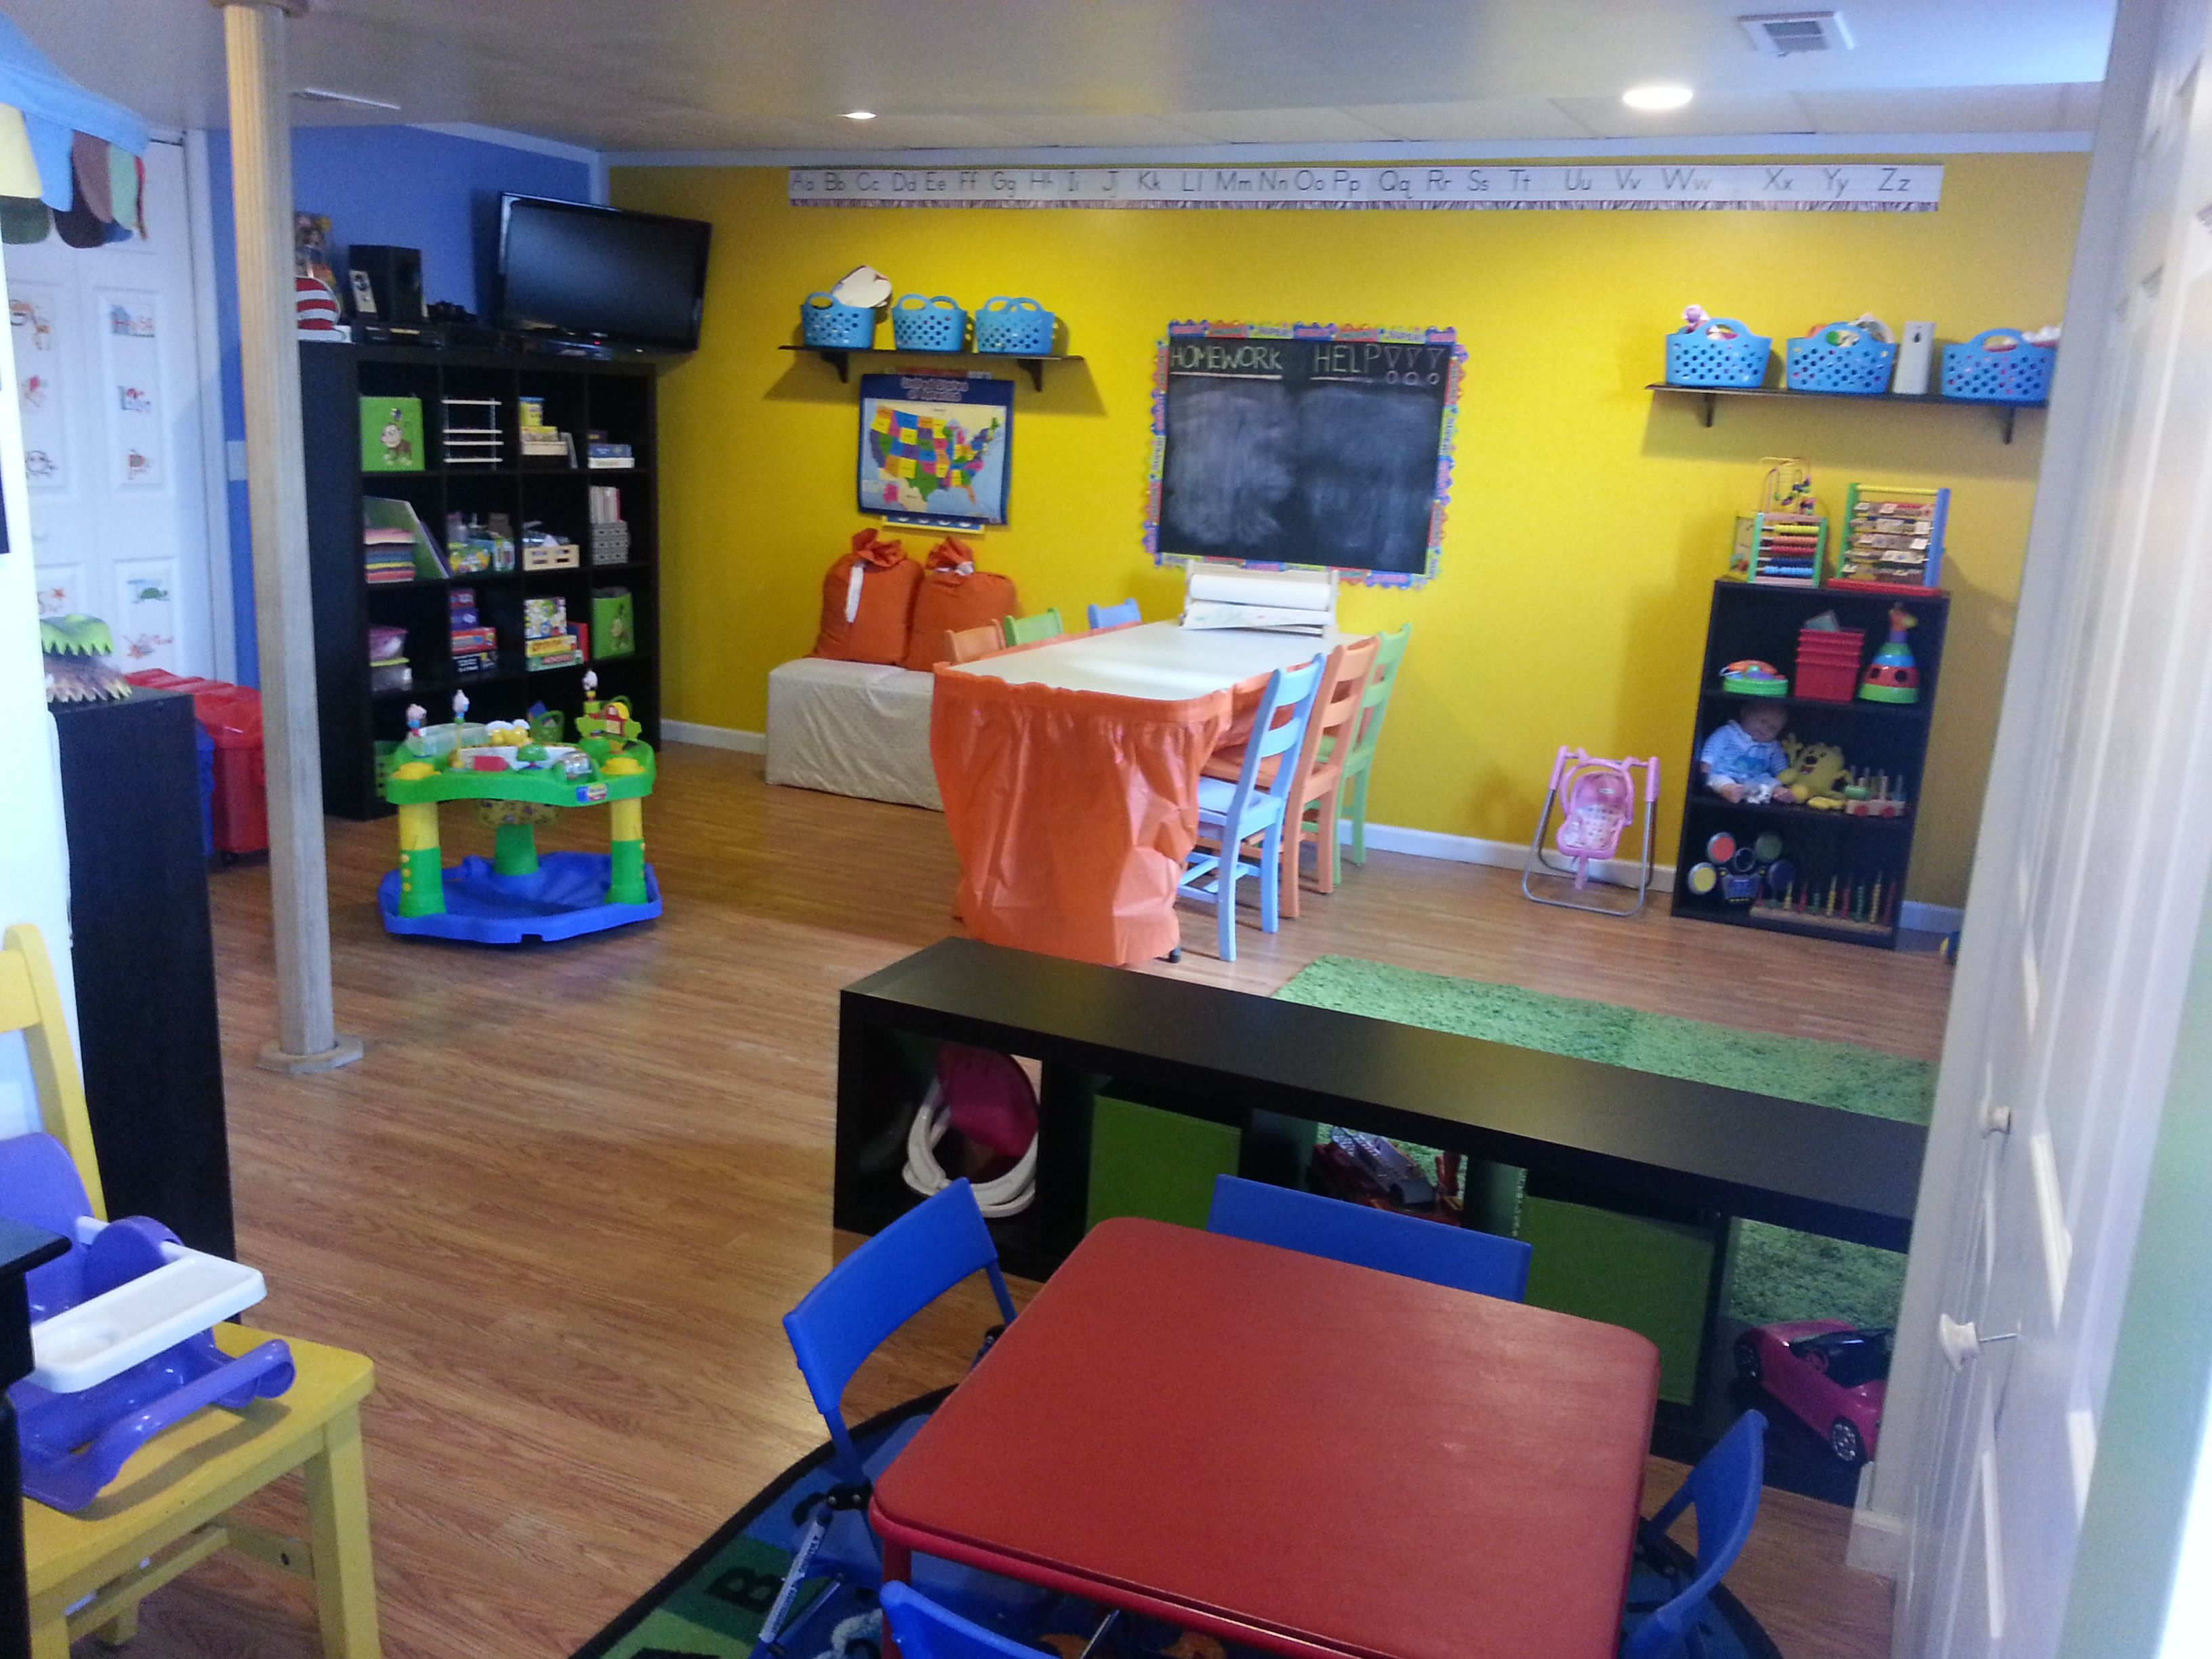 Daycare room setup the hawley house daycare pinterest daycare rooms daycares and bright walls - Daycare room setup ideas ...